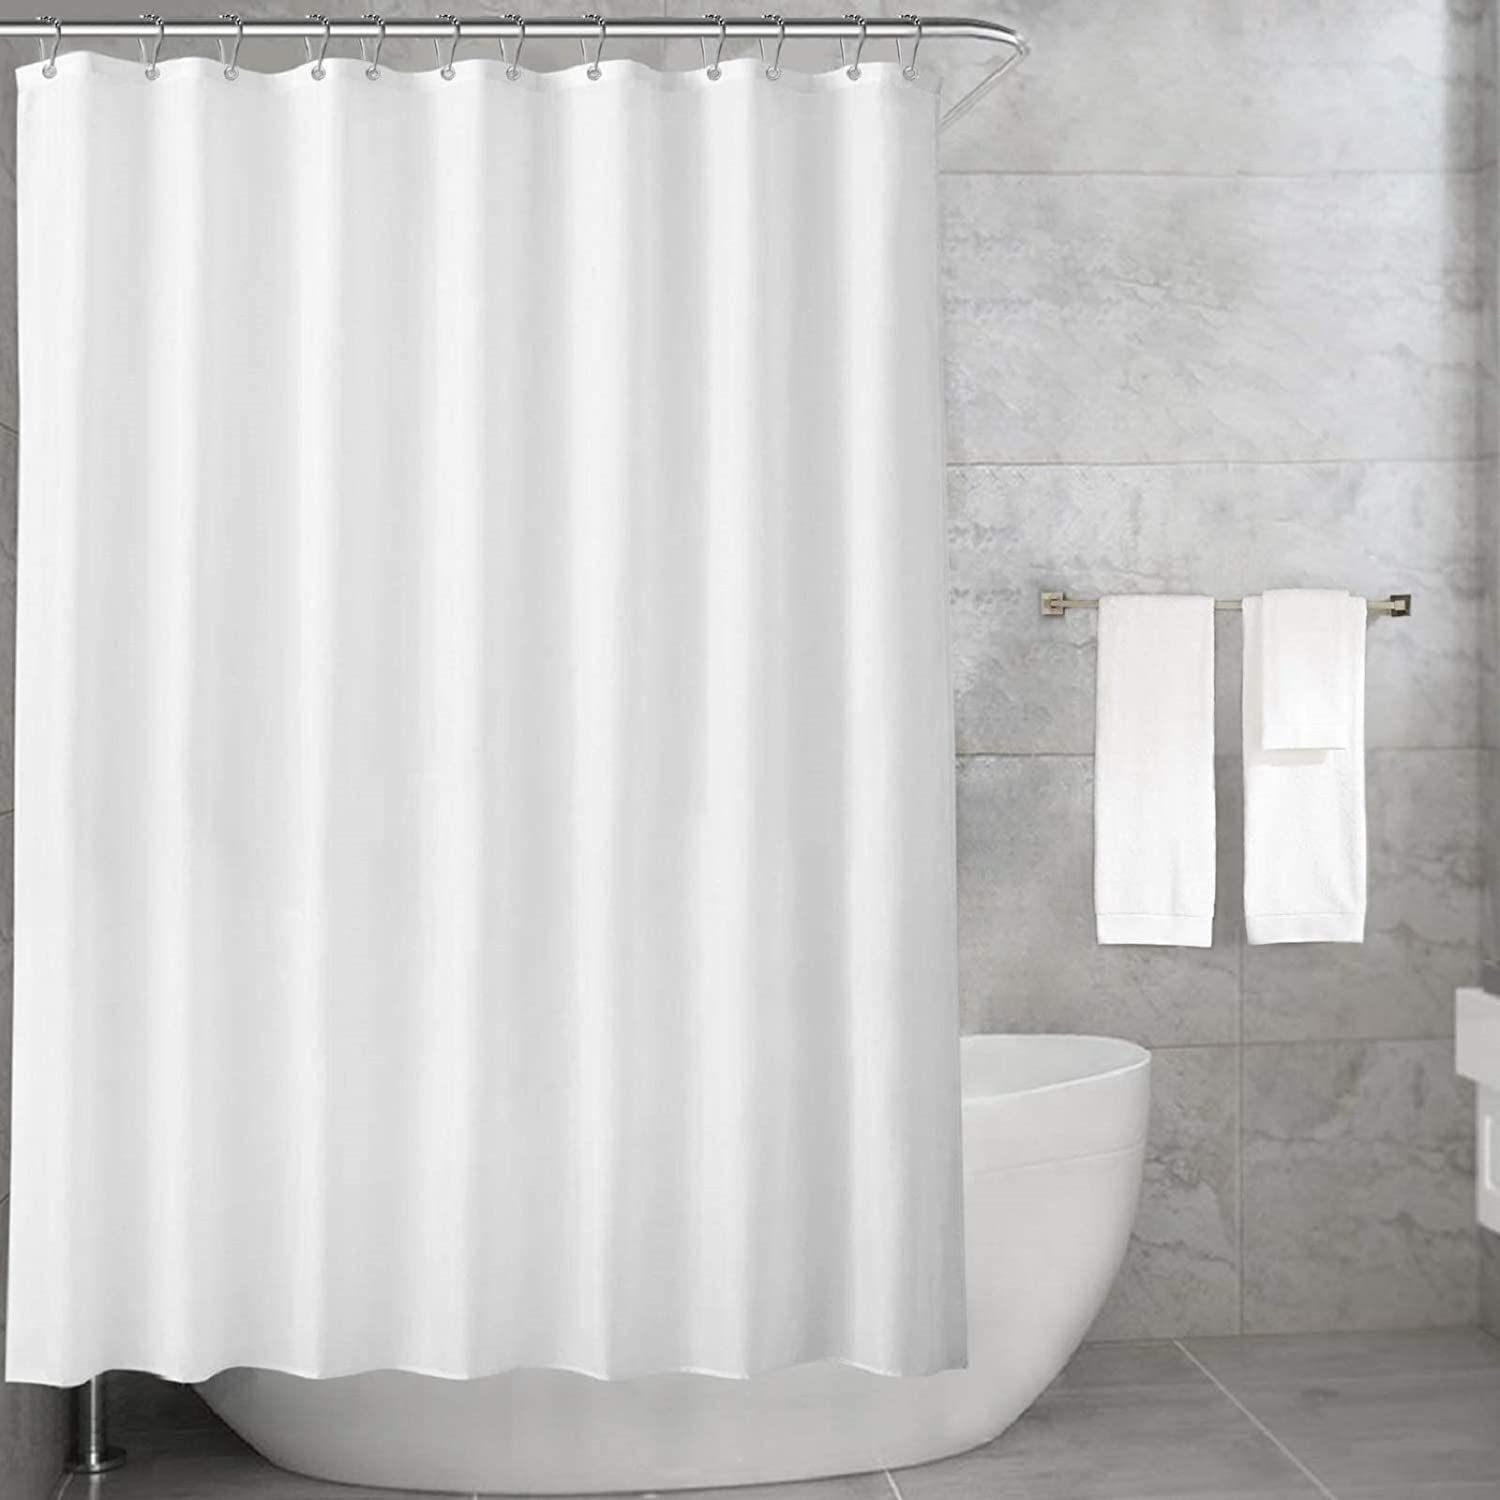 Carttiya Shower Curtain, Fabric White Shower Curtains, Waterproof and Mould & Mildew Resistant, Long, with 12 Rustproof Hooks and Weighted Hem, for Bath Tub and Shower Stall, 72x72inches White 180 x 180 cm